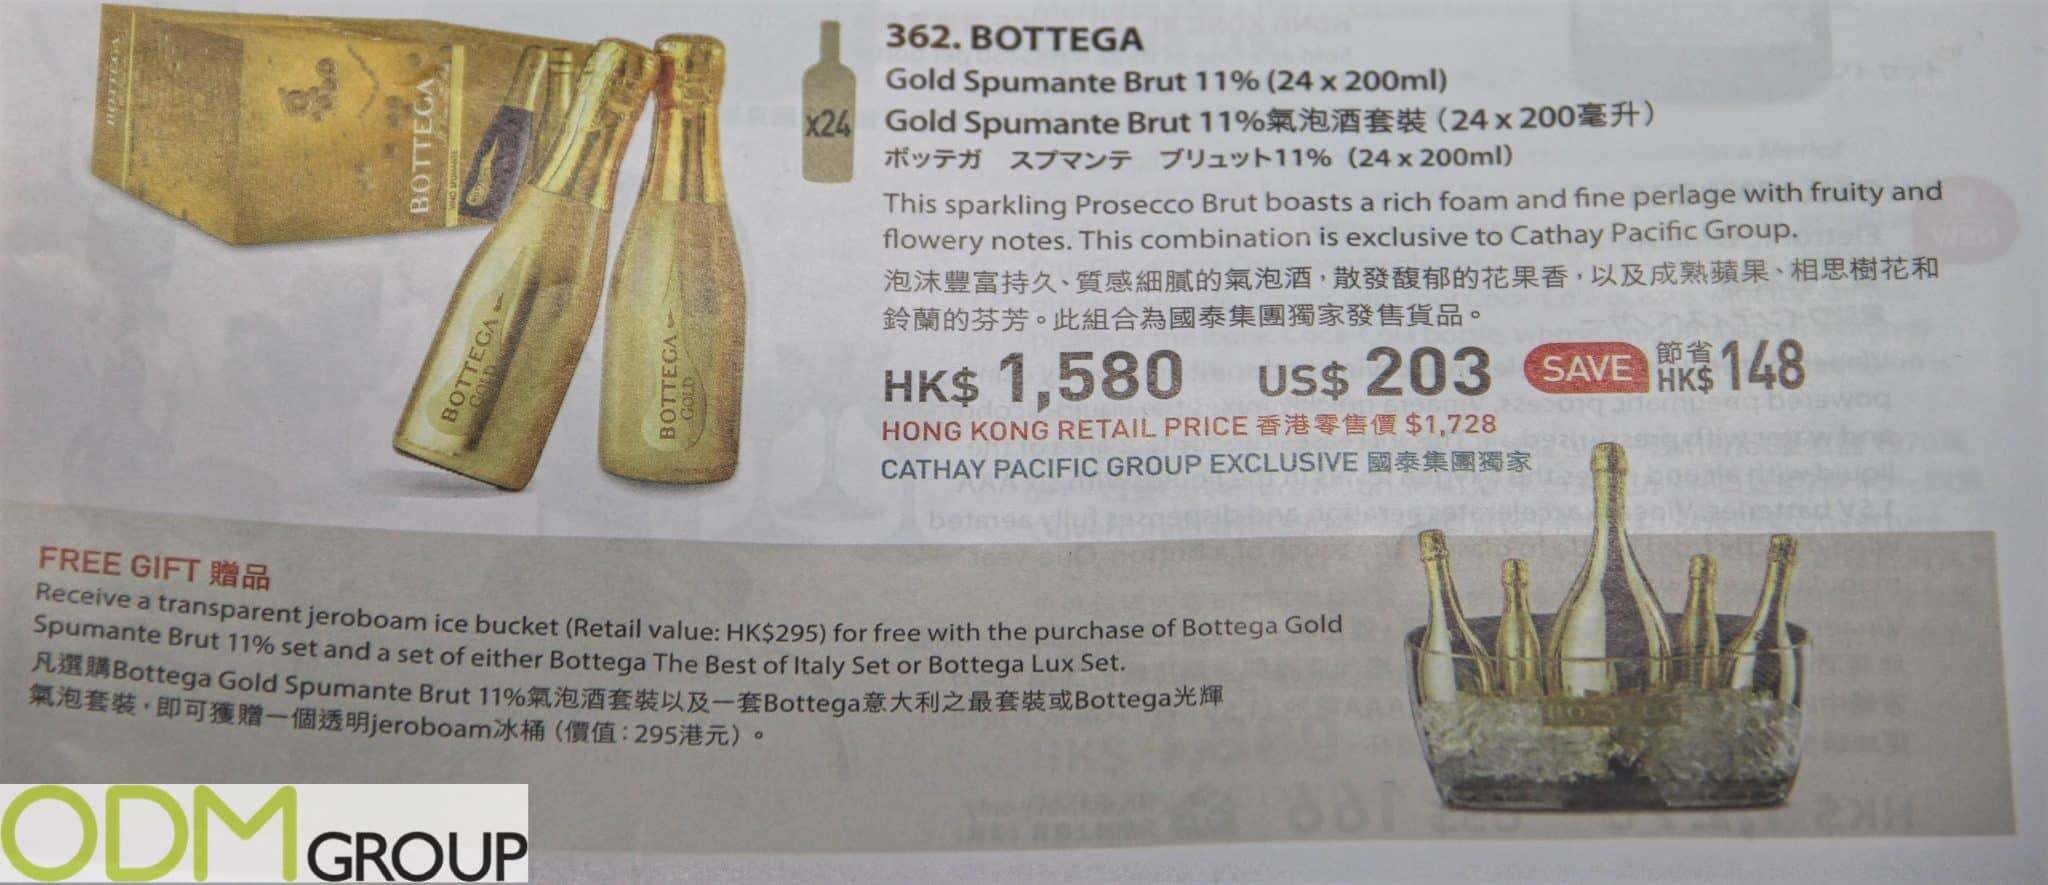 Magazine Promotion: Bottega Offers Free Ice Bucket